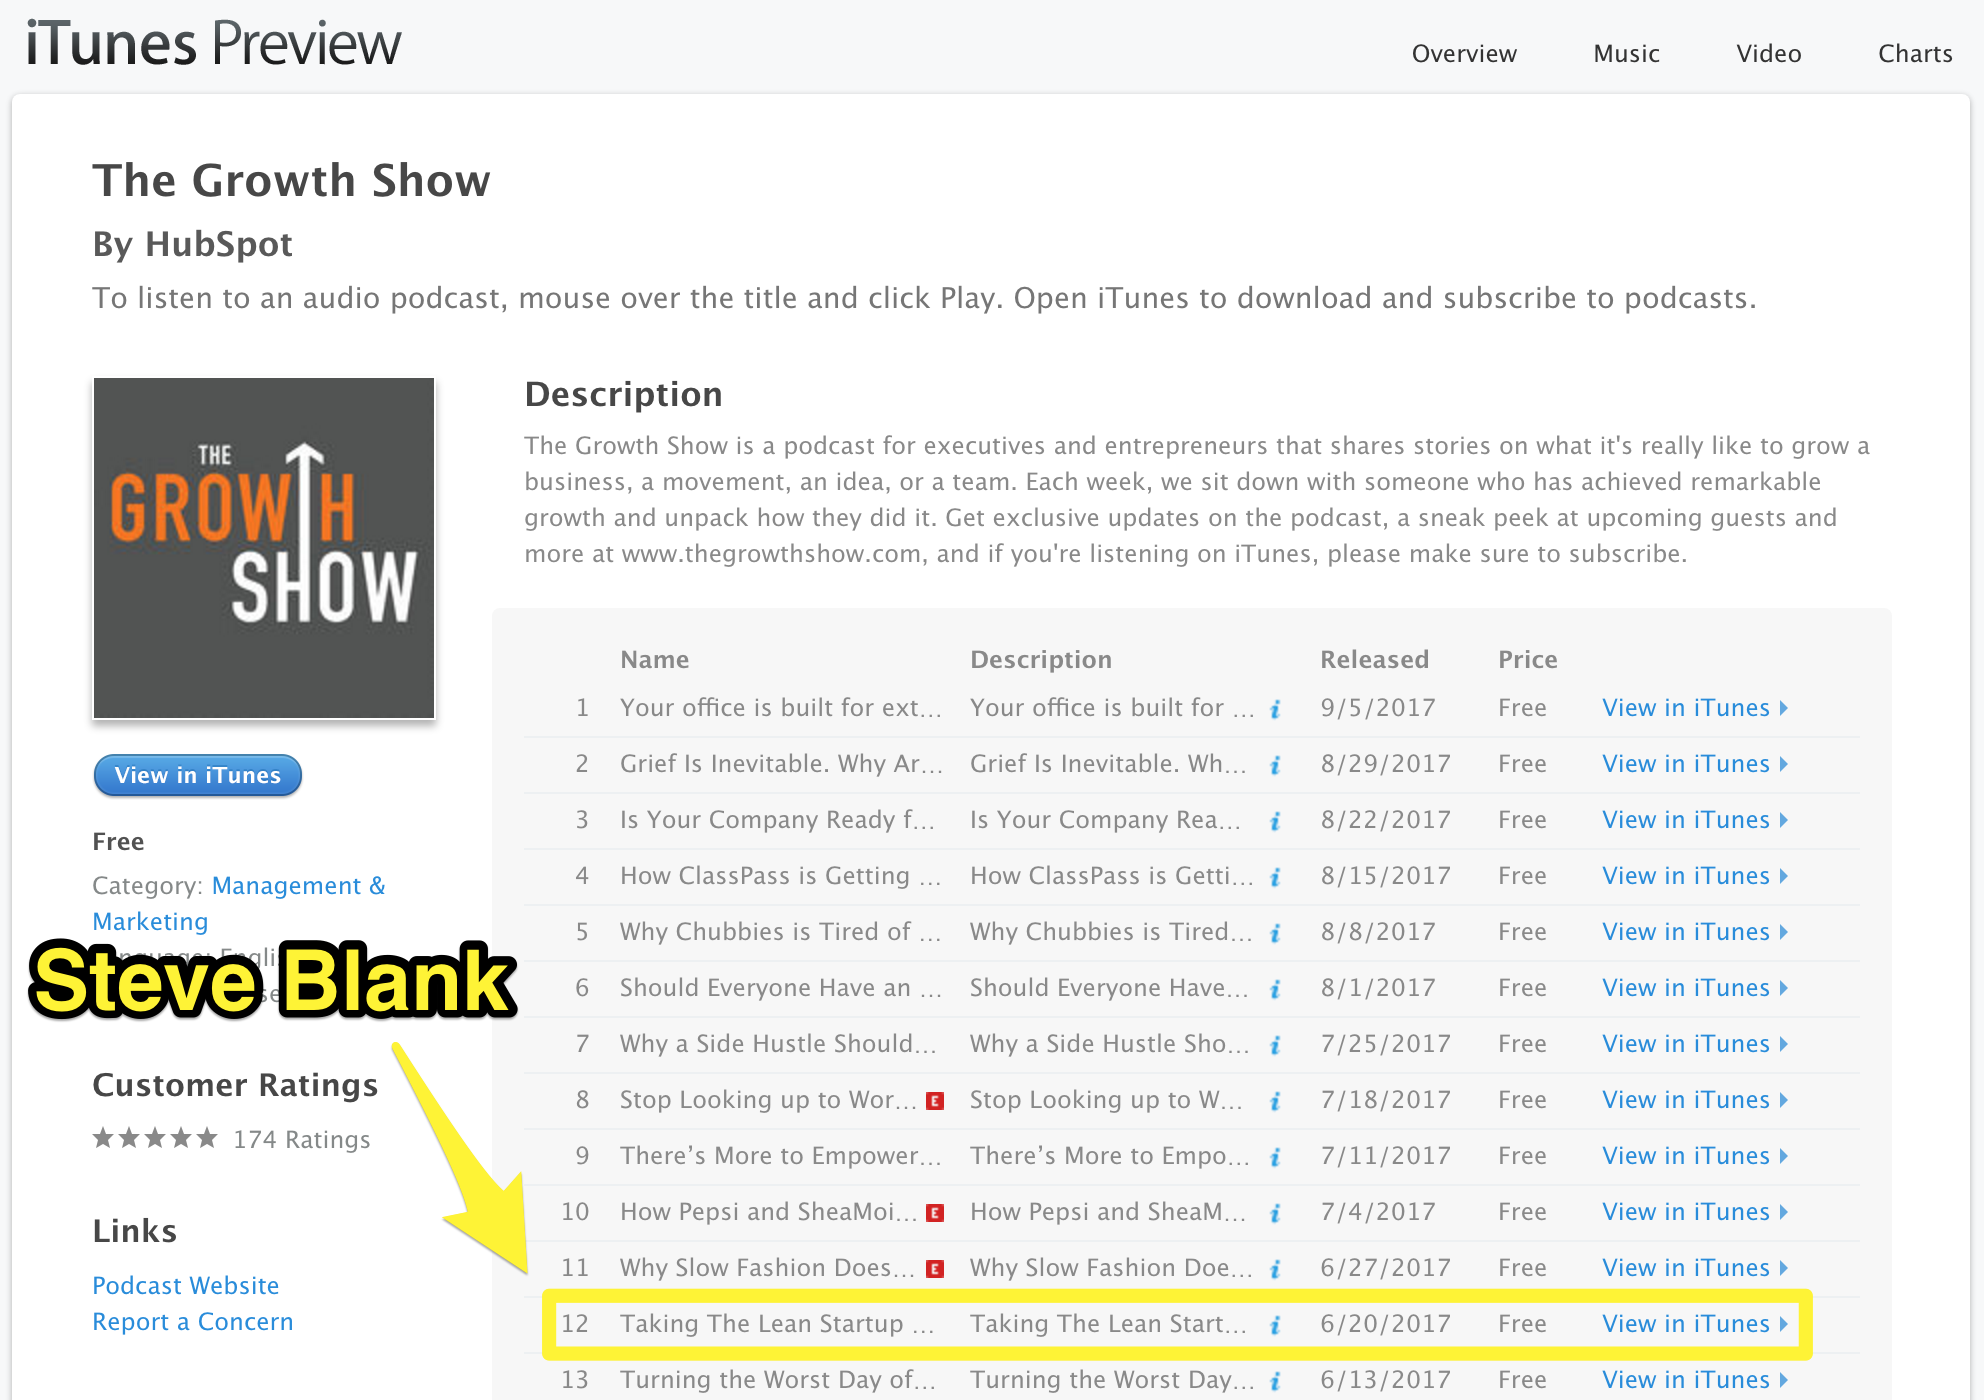 Screenshot showing itunes podcast info for a hubspot podcast